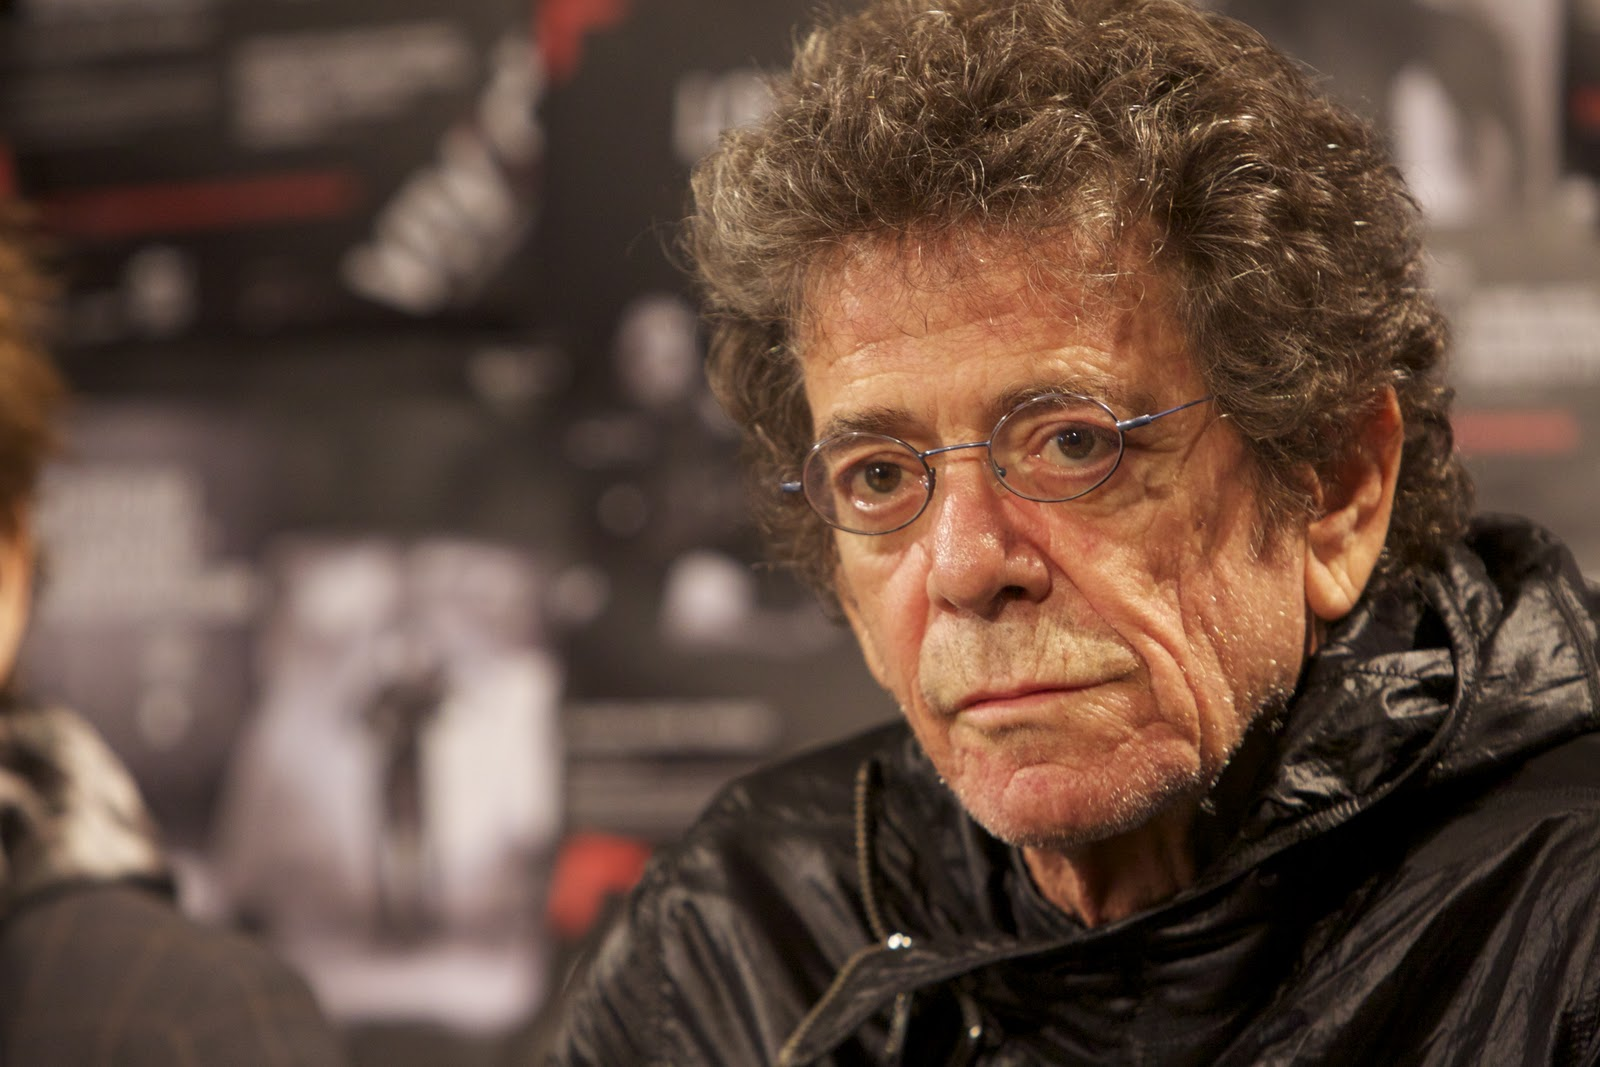 ON – LOU REED